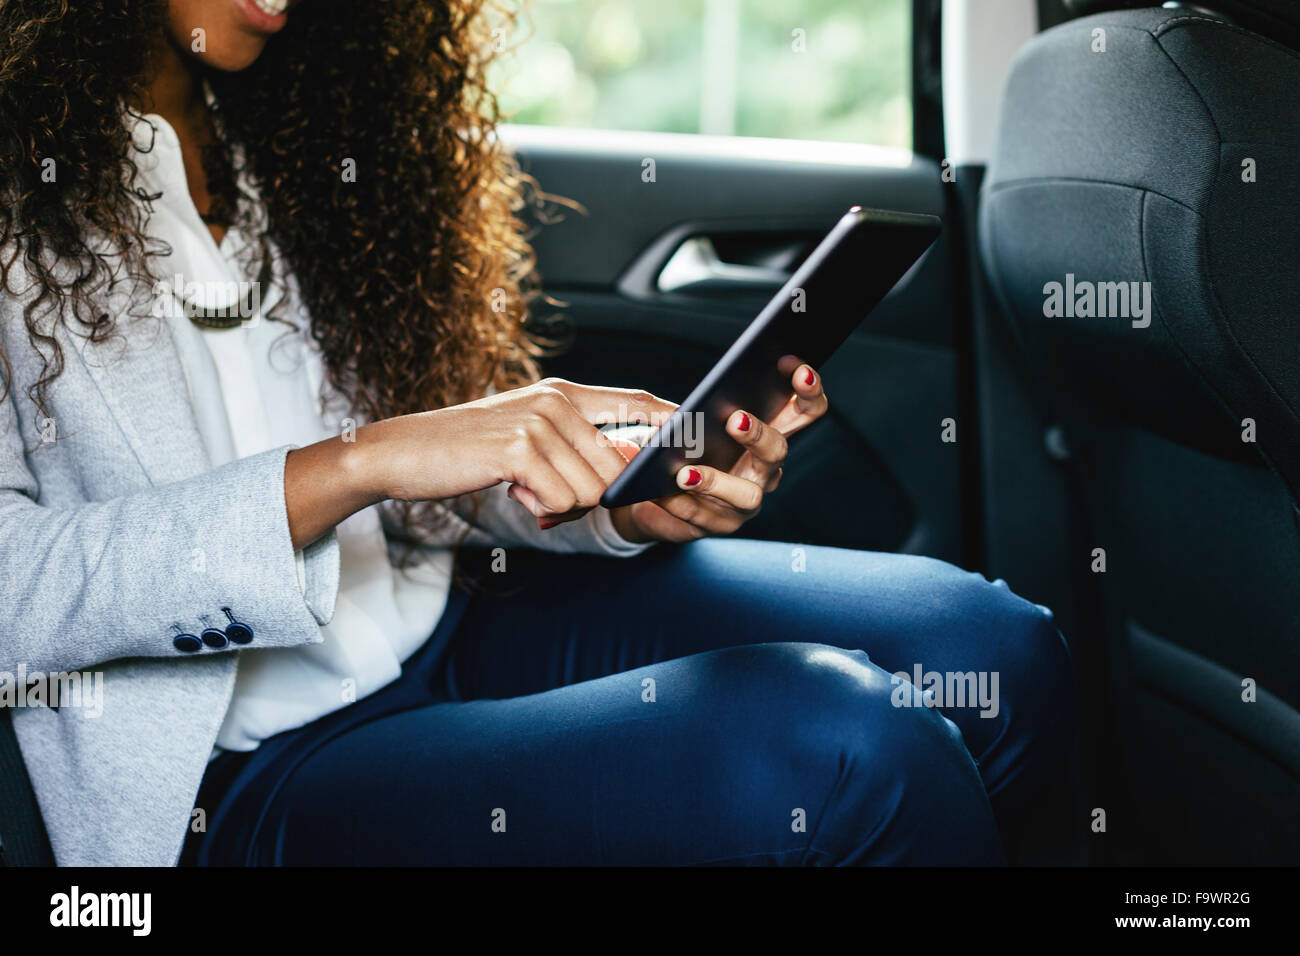 Young woman sitting on back seat of a car using mini tablet, close-up - Stock Image